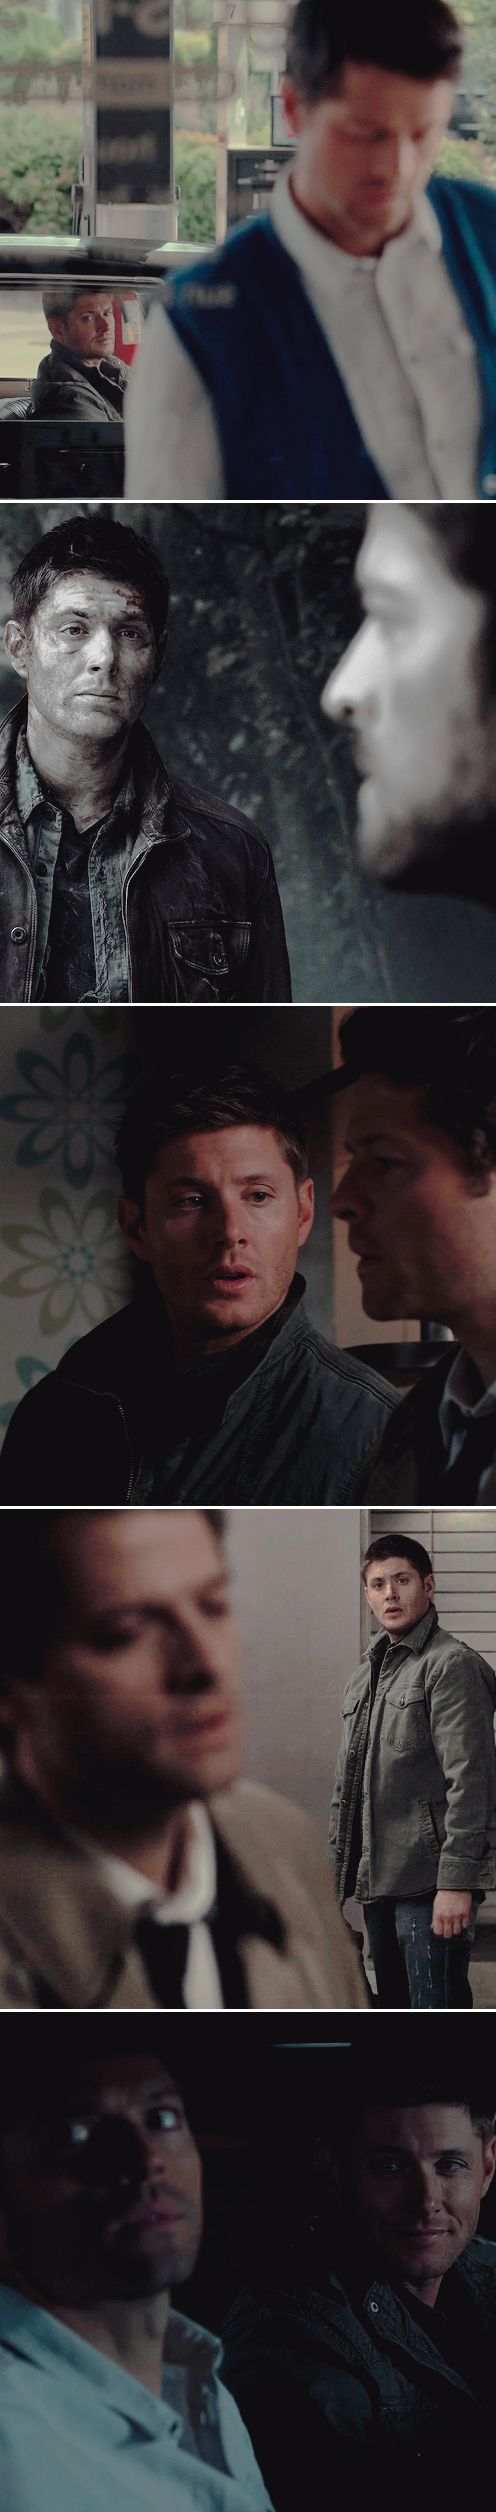 supernatural dean and castiel relationship